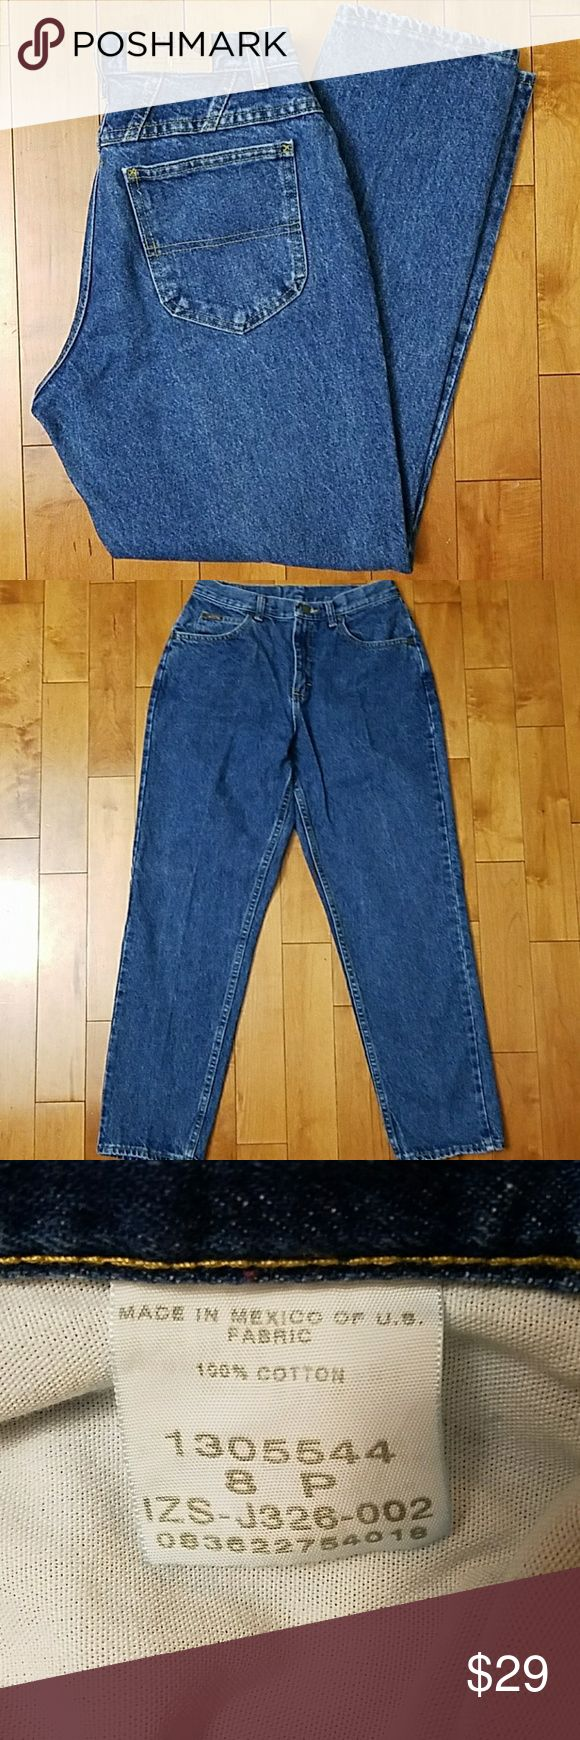 """Riders by Lee High Waisted Mom Jeans Riders by Lee High Waisted Petite Mom Jeans.   Tapered leg.  Size 8P.  Excellent condition and on trend!  Would also make a great pair of cutoff shorts.  14.25"""" across the waist.  11.5"""" rise.  28.5"""" inseam. 100% cotton. Riders by Lee Jeans"""